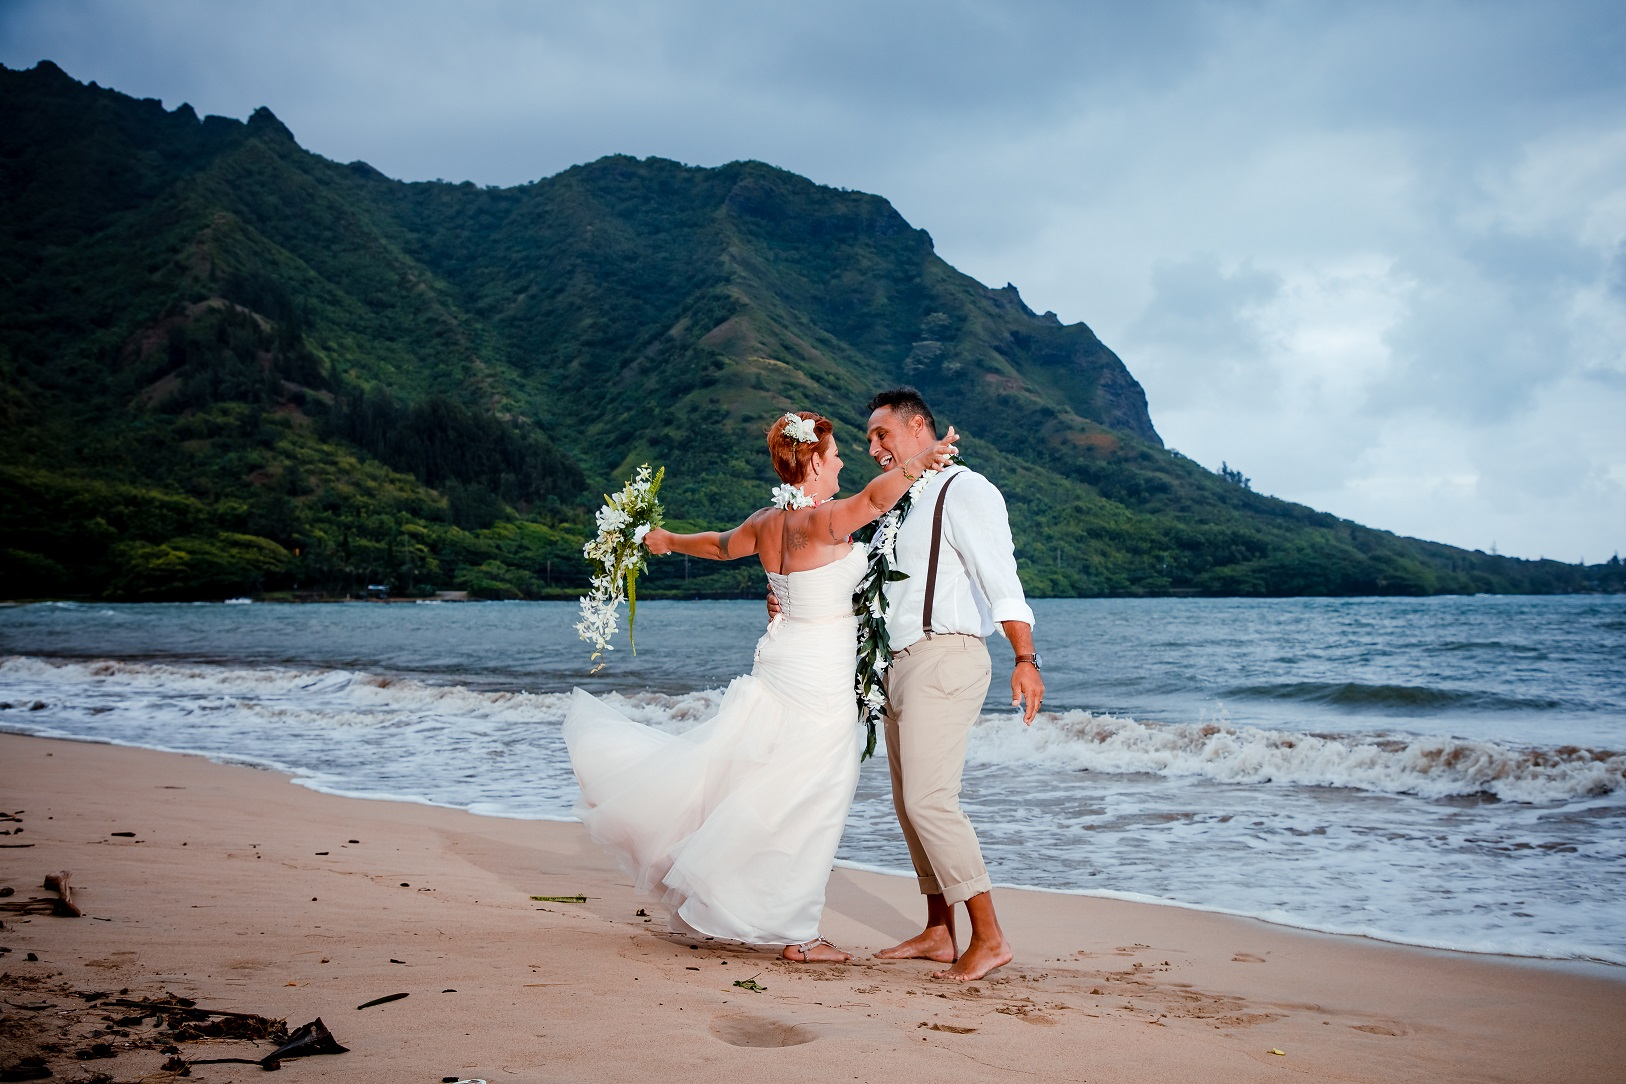 bride groom first dance Hawaii beach sunset ocean